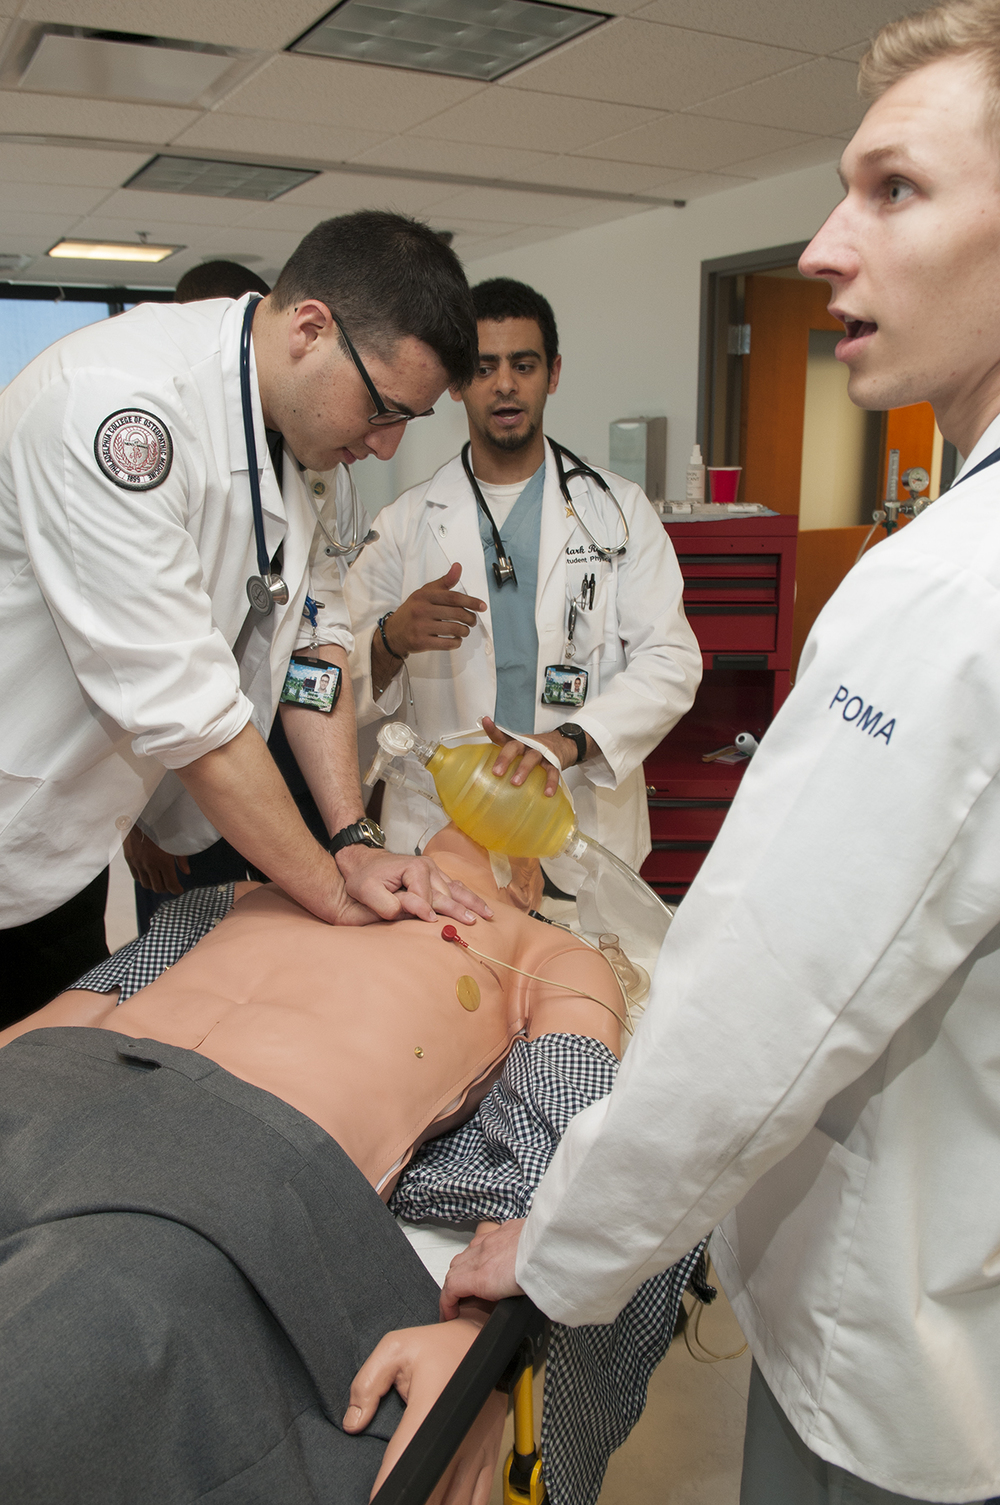 Sim Lab is dedicated to translating preclinical knowledge into clinical acumen. Through the use of PCOM's CLAC on the 4th floor of Rowland Hall, the EMed Club is able to simulate emergency medicine cases with high fidelity. Sim lab is a very interactive experience and those who attend should expect to be brought into the process. The cases typically are designed to complement what is being learned in the classrooms of the 1st and 2nd year DO students, although all PCOM students, regardless of program, year, or membership status in EMed Club are invited to attend. In other words, Sim Lab is about building a clinical knowledge base, learning how to think critically in front of a crashing patient and is open to everyone on campus! For those who may be  interested in submitting cases for sim lab, if you write a case it will be reviewed by current 3rd and 4th year students as well as EM residents and if accepted, you will be noted as a contributing author to the site. (Yes, you can put this on your resume!)